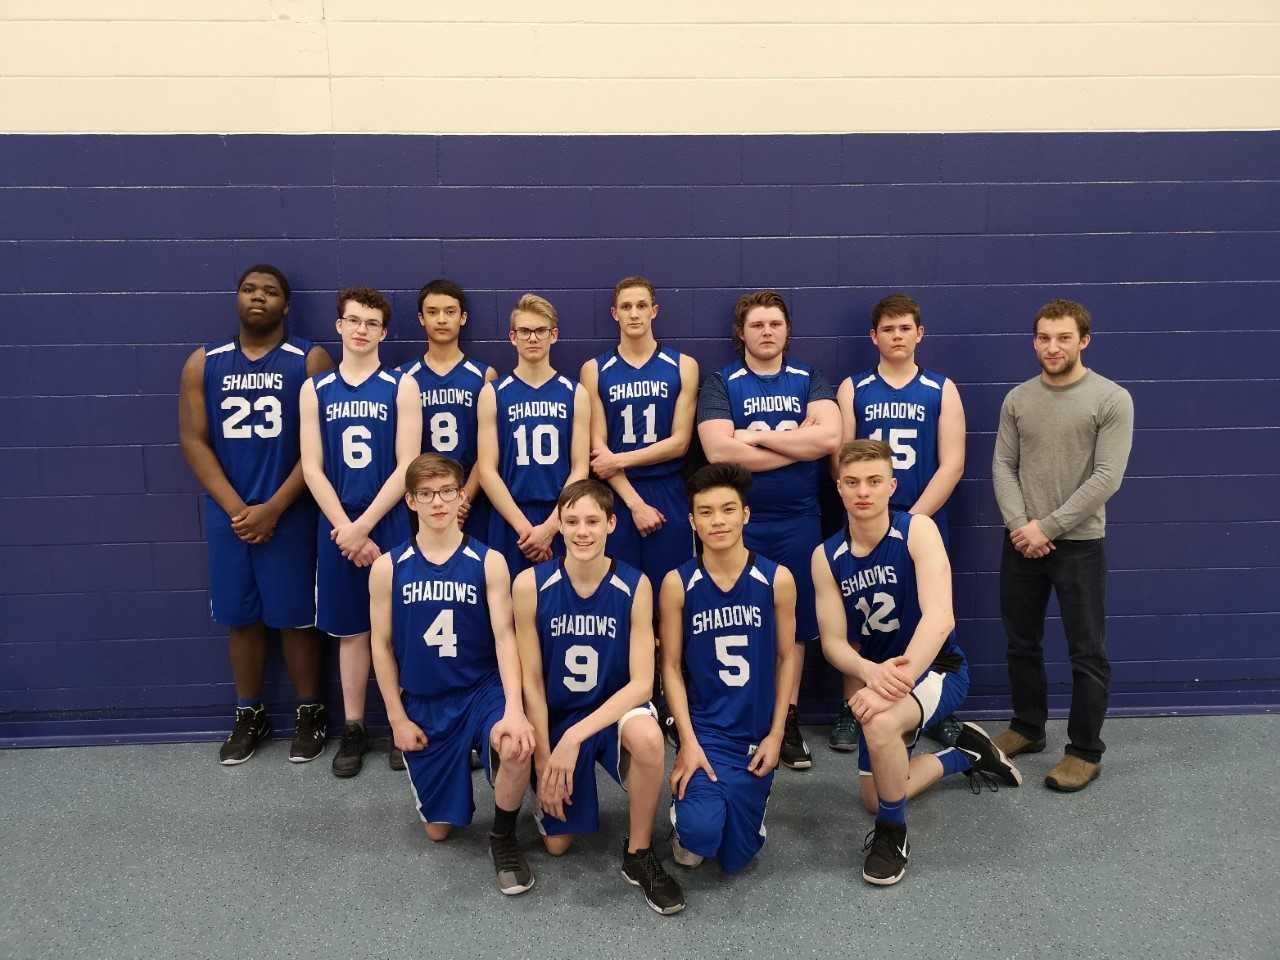 sr boys bball league Shaunavon second.jpg